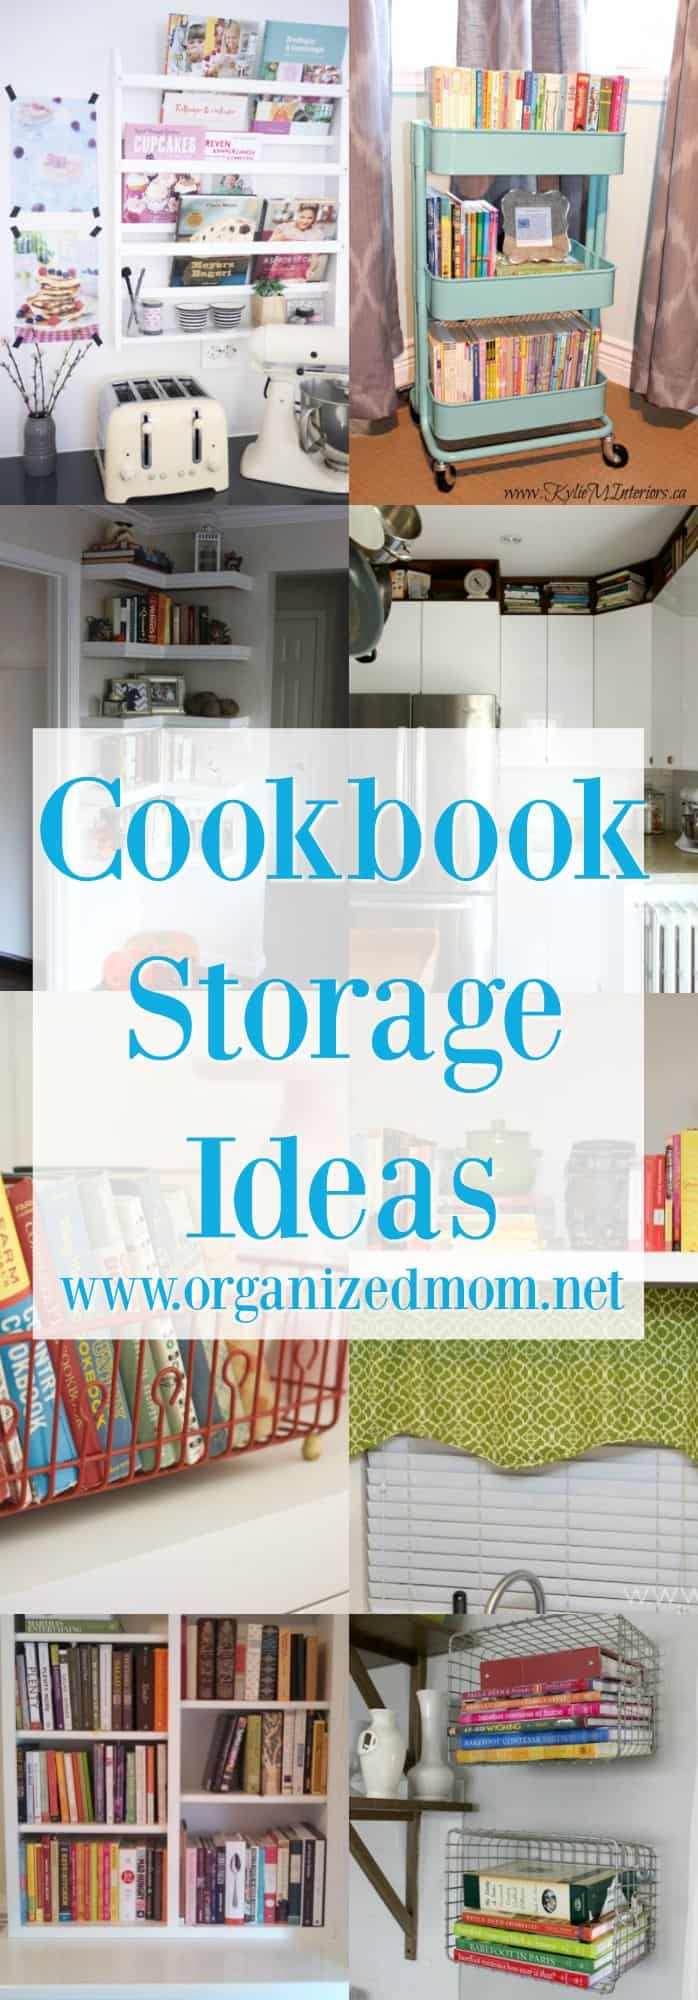 Home Decor Storing Cookbooks For Organization If You Don T Want To Get